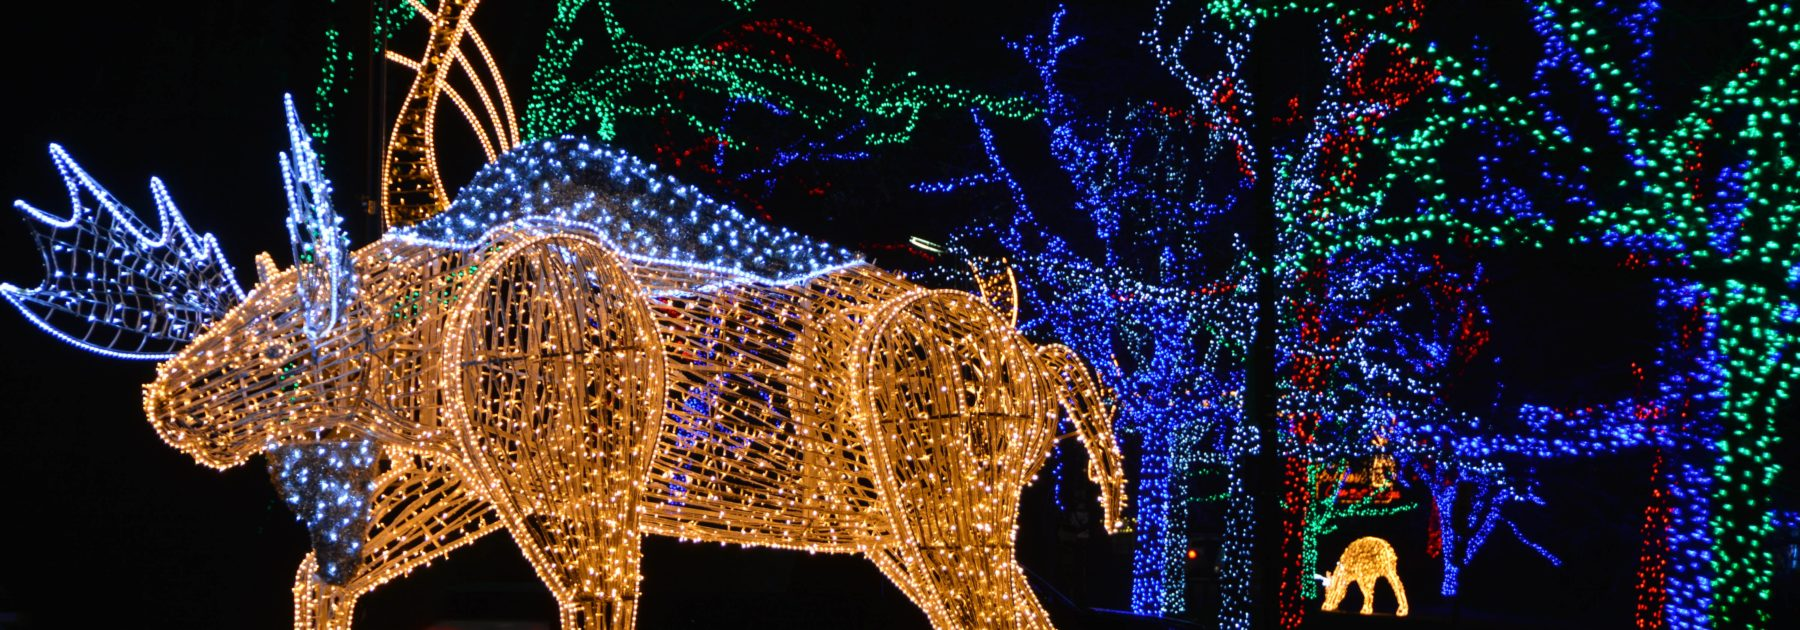 Moose illumination display at Dufferin Islands